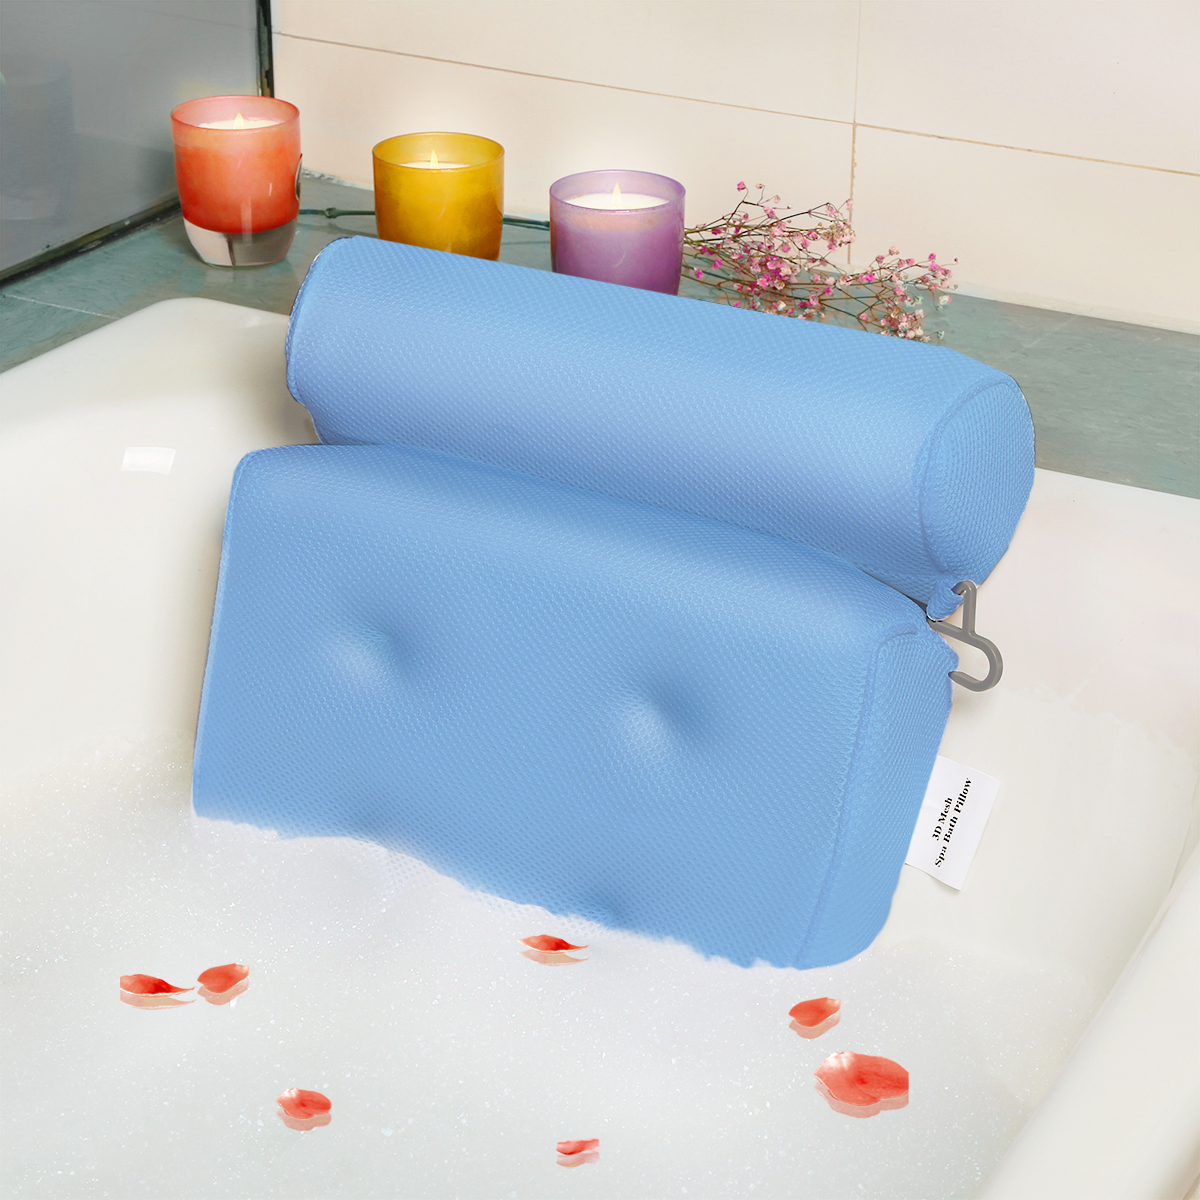 Breathable 3D Mesh Spa Bath Pillow with 4 Suction Cups, Neck & Back Support Home Hot Tub... by Besmall